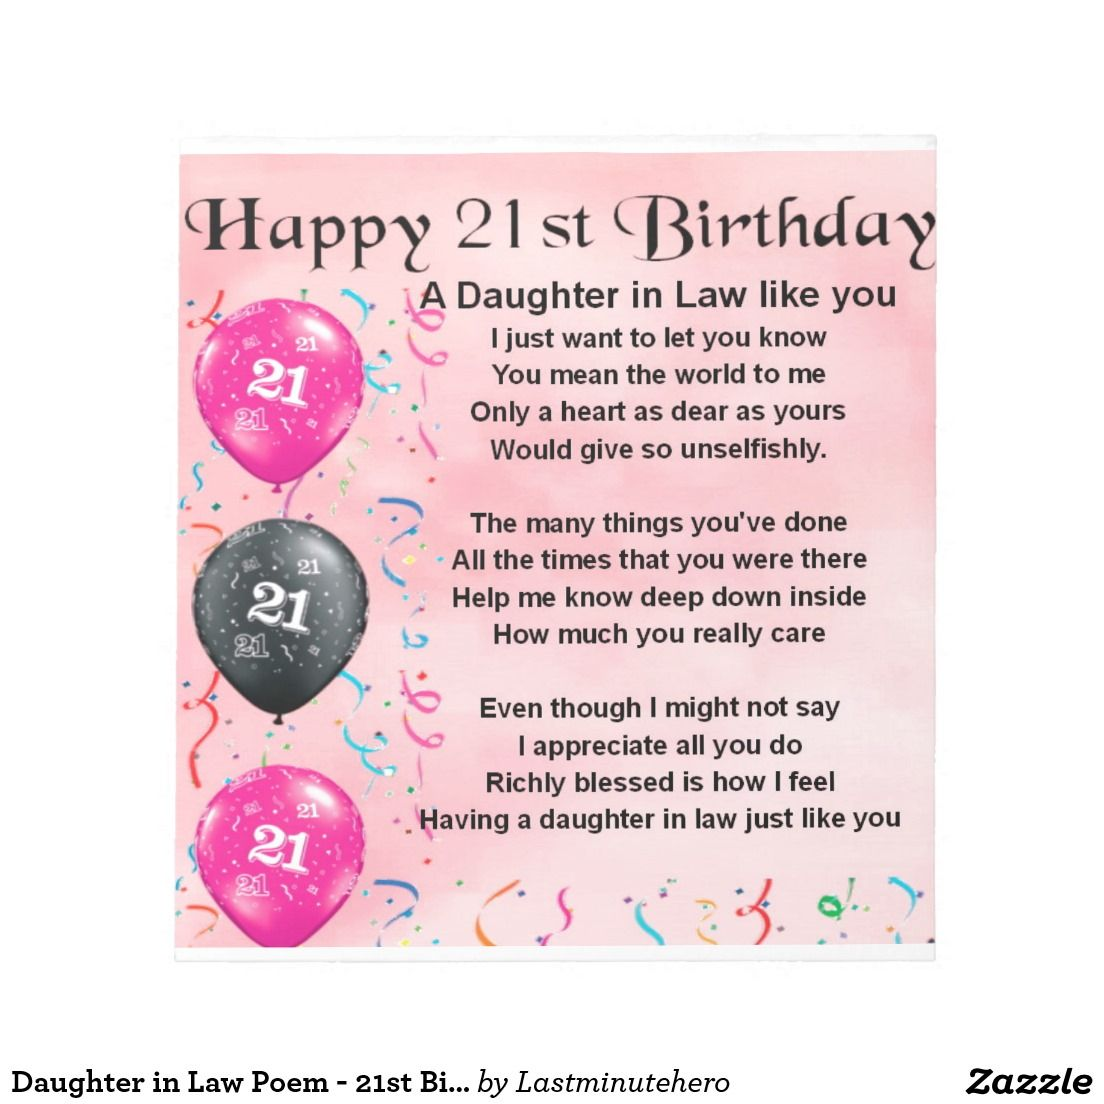 Daughter In Law Poem - 21st Birthday Notepad